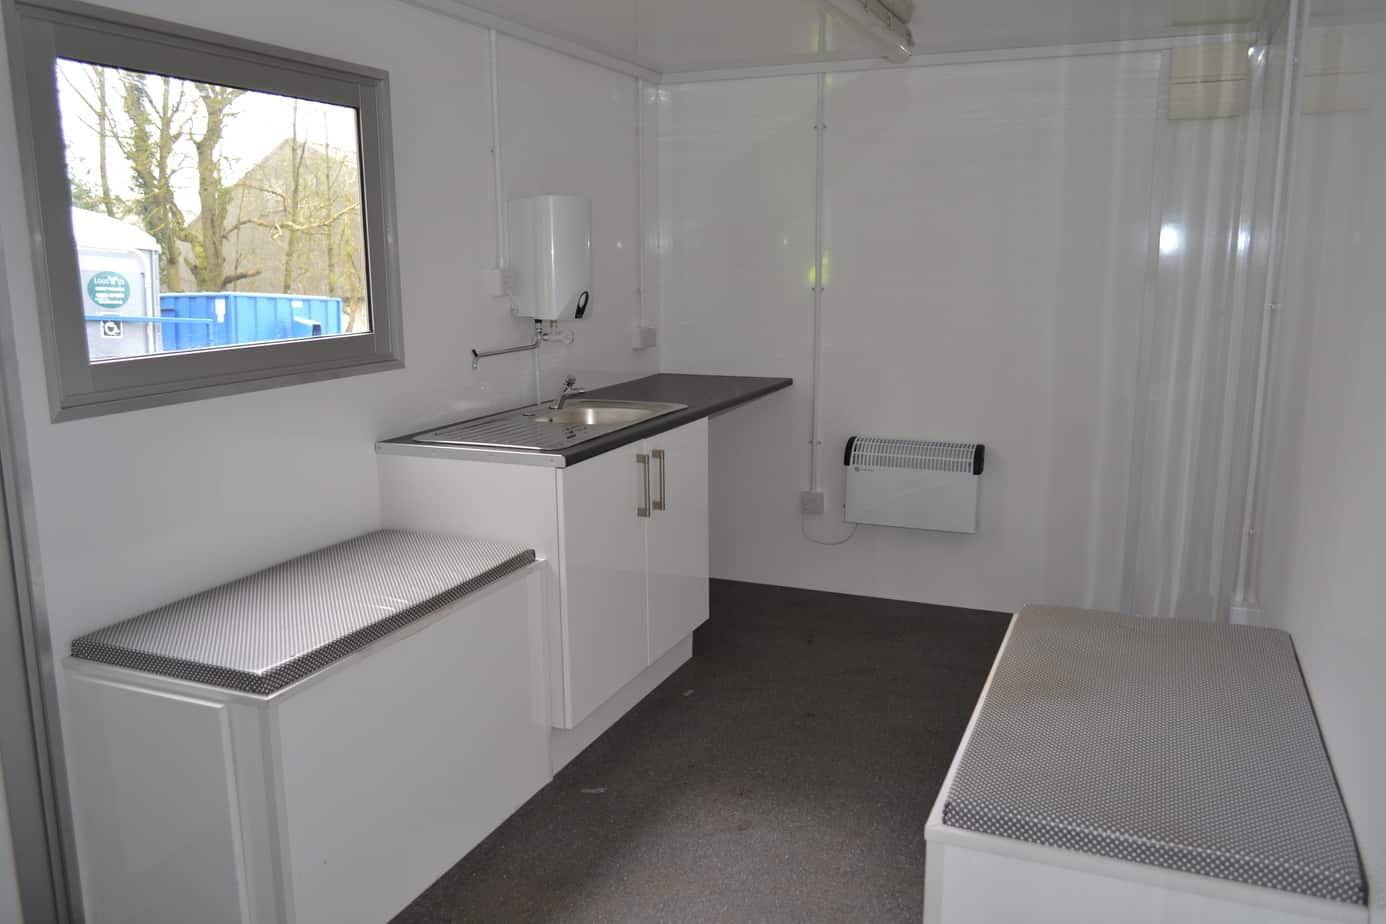 16ft wheeled cabins